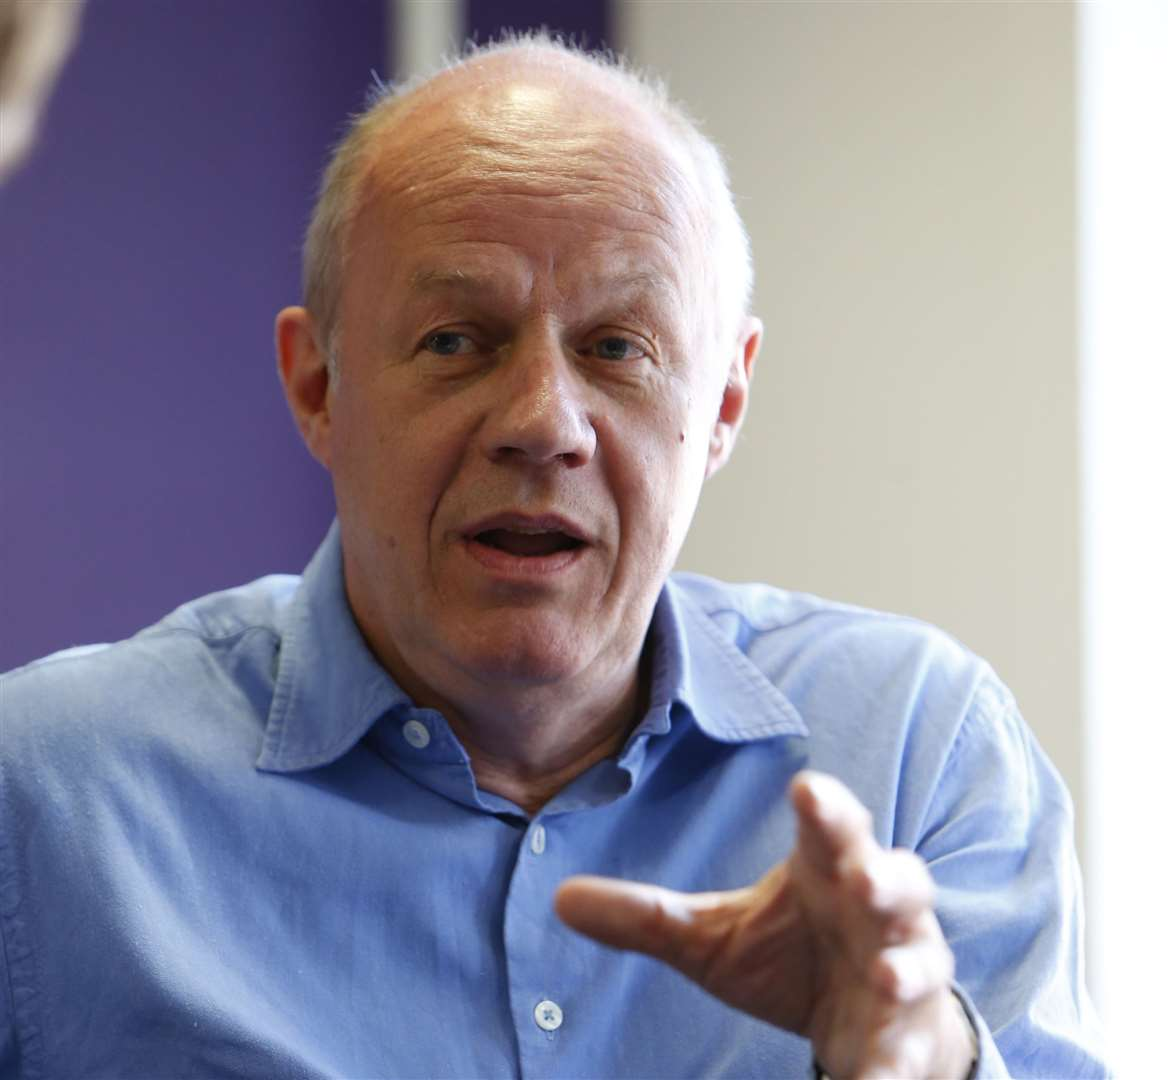 Damian Green believes people should be individually responsible in their actions to avoid an extended lockdown